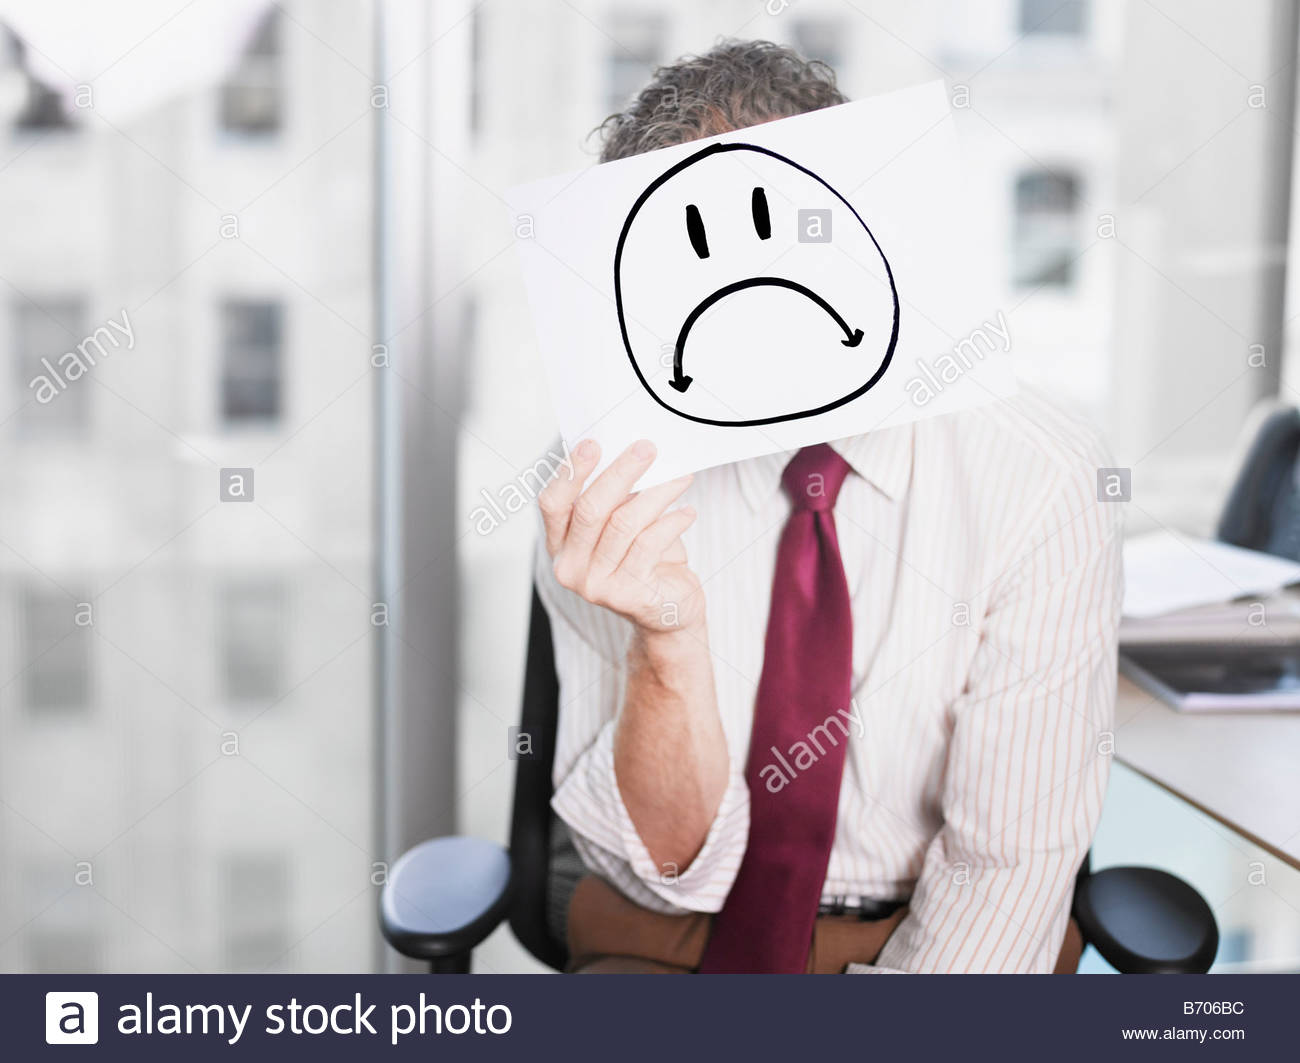 Businessman holding picture of sad face - Stock Image